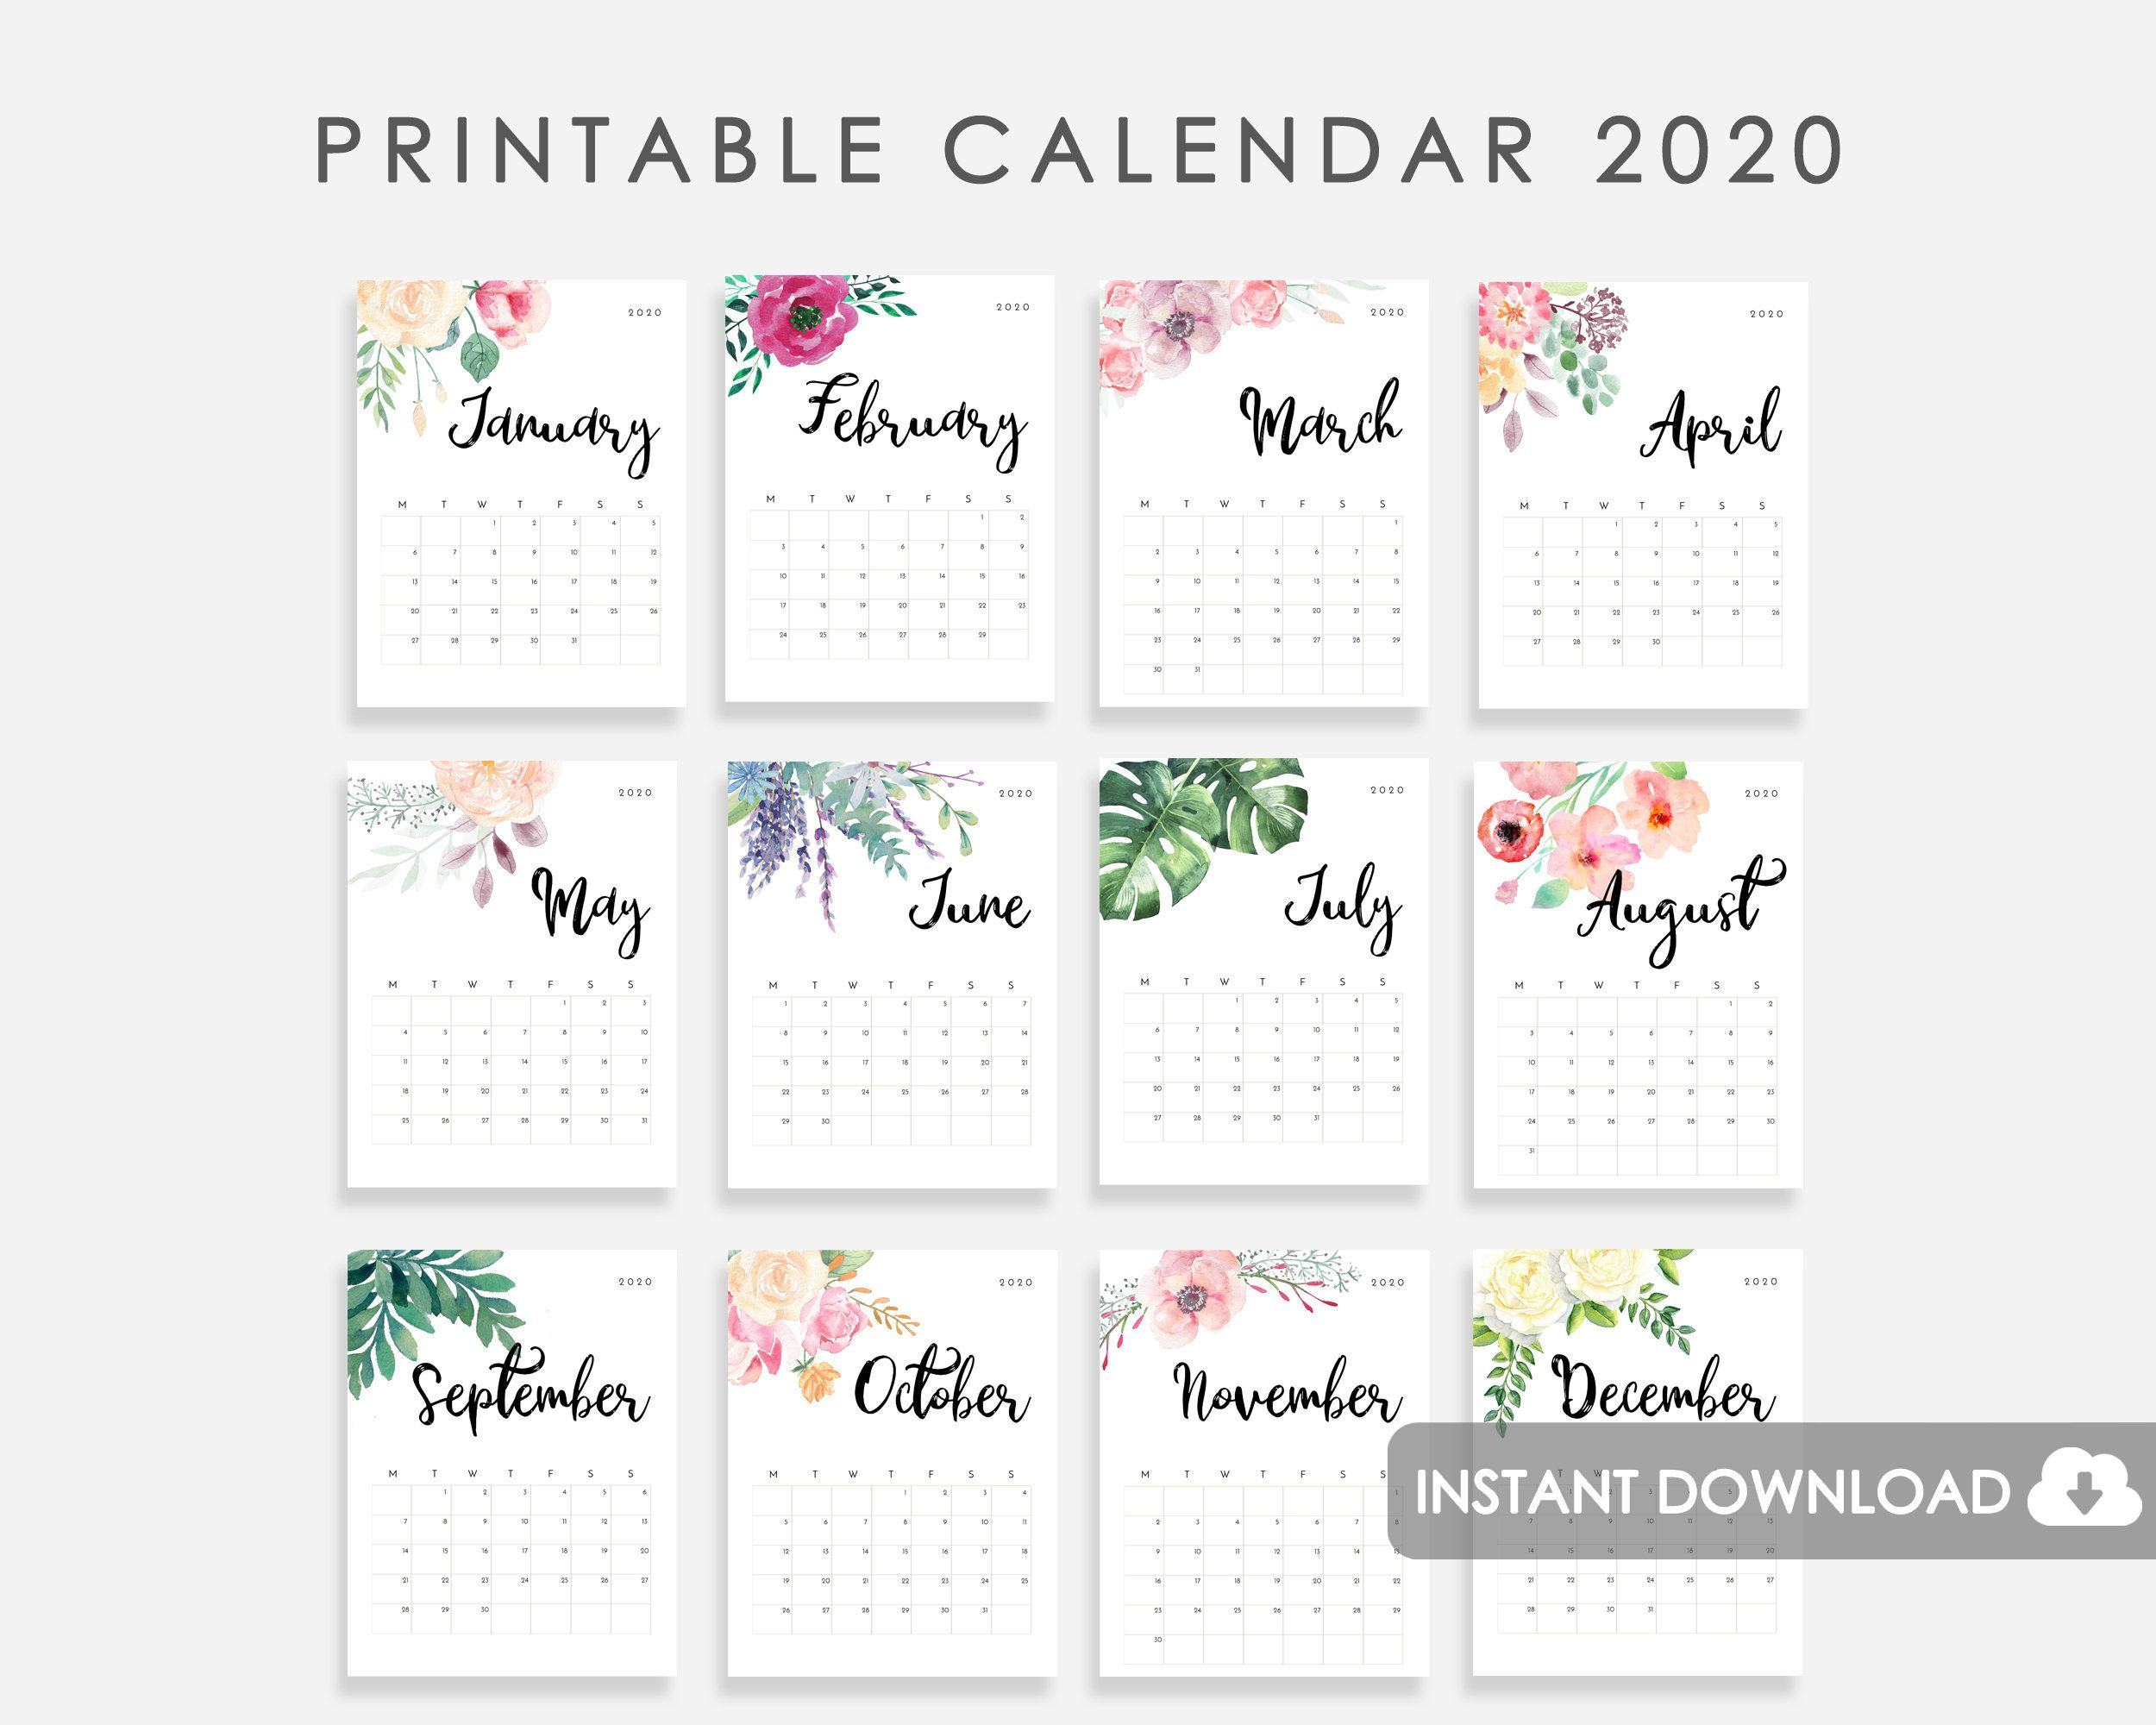 2020 Calendar Printable, Desk Calendar 2020, 2020 Wall